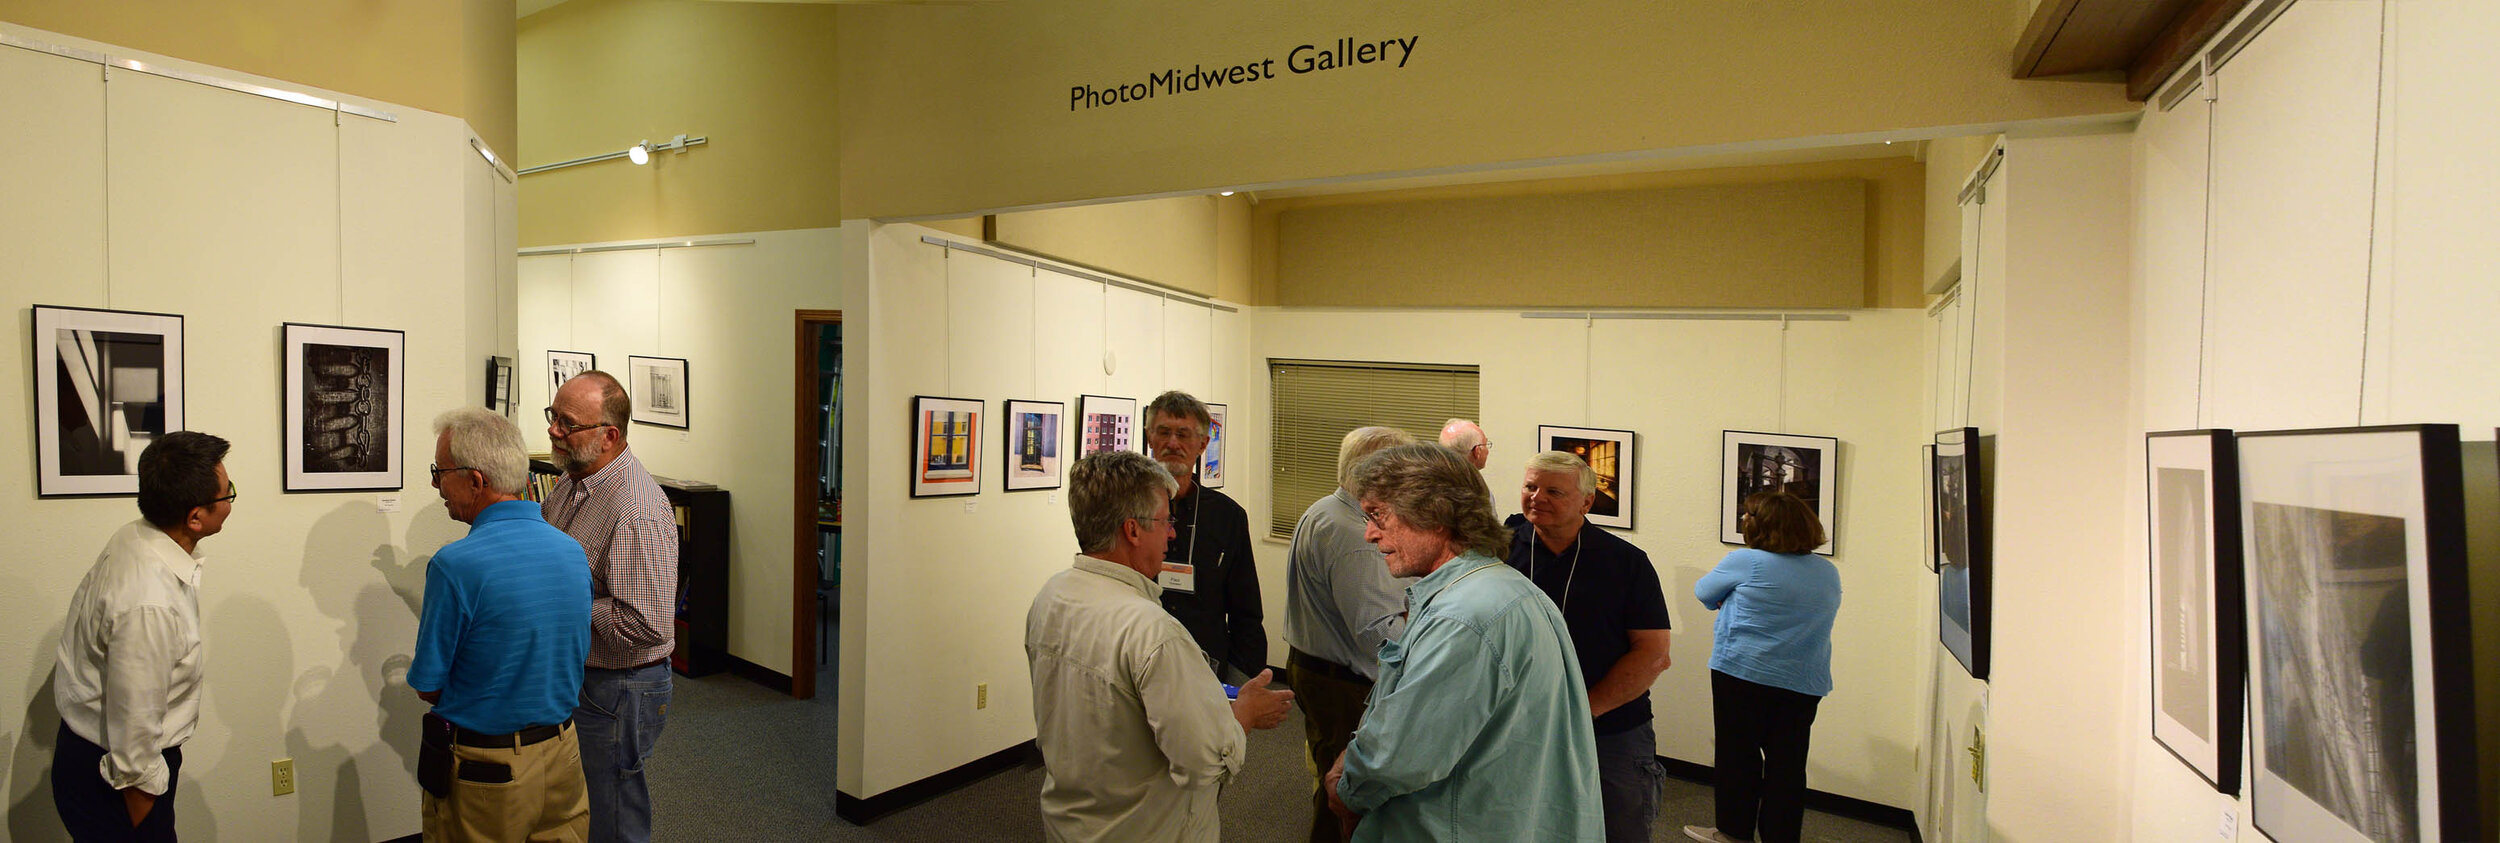 Featured Photographer opening at PhotoMidwest. Photo by Kurt Westbrook, all rights reserved.